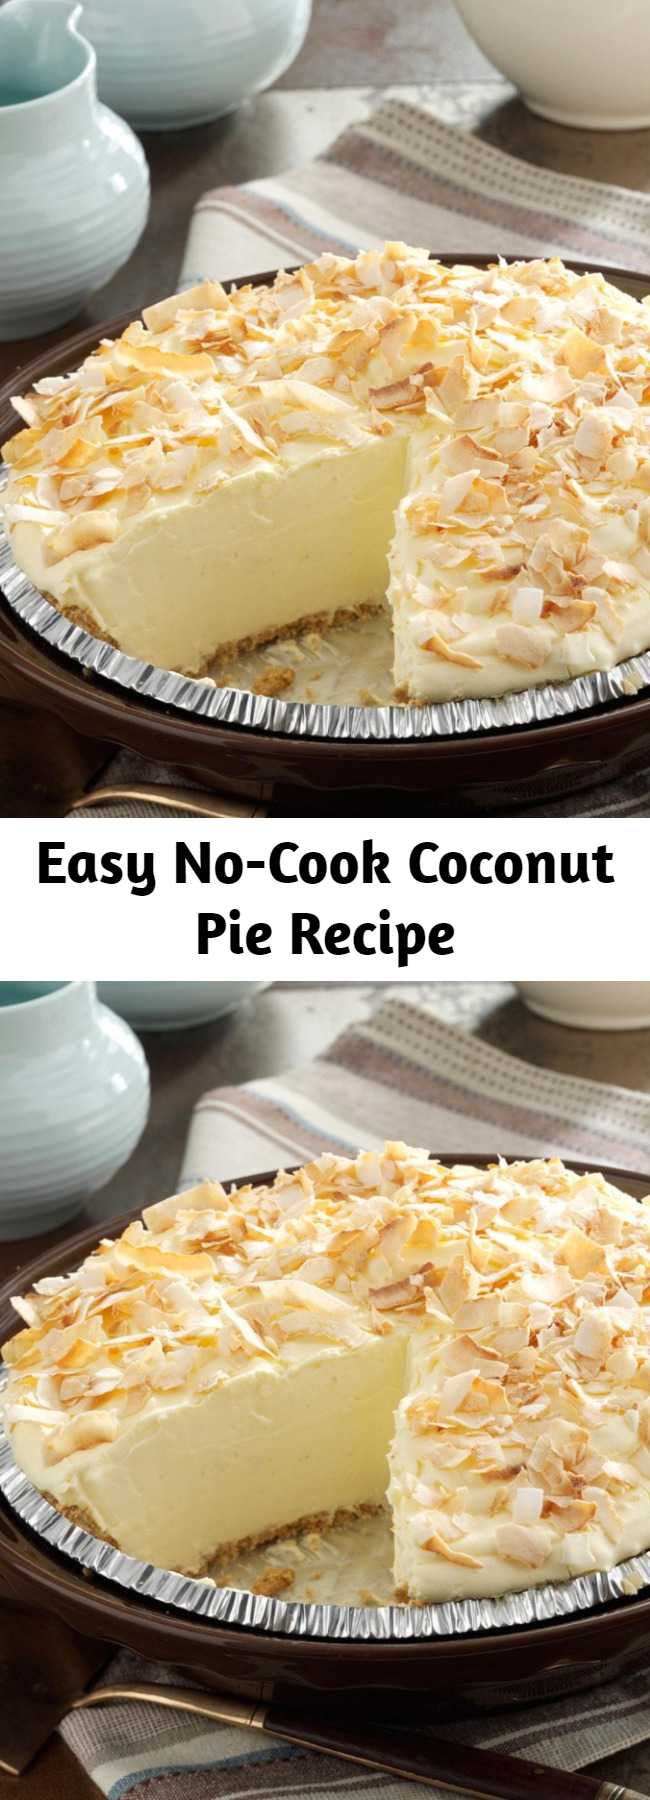 Easy No-Cook Coconut Pie Recipe - This creamy No-Cook Coconut Pie proves that a quick meal doesn't have to go without dessert.